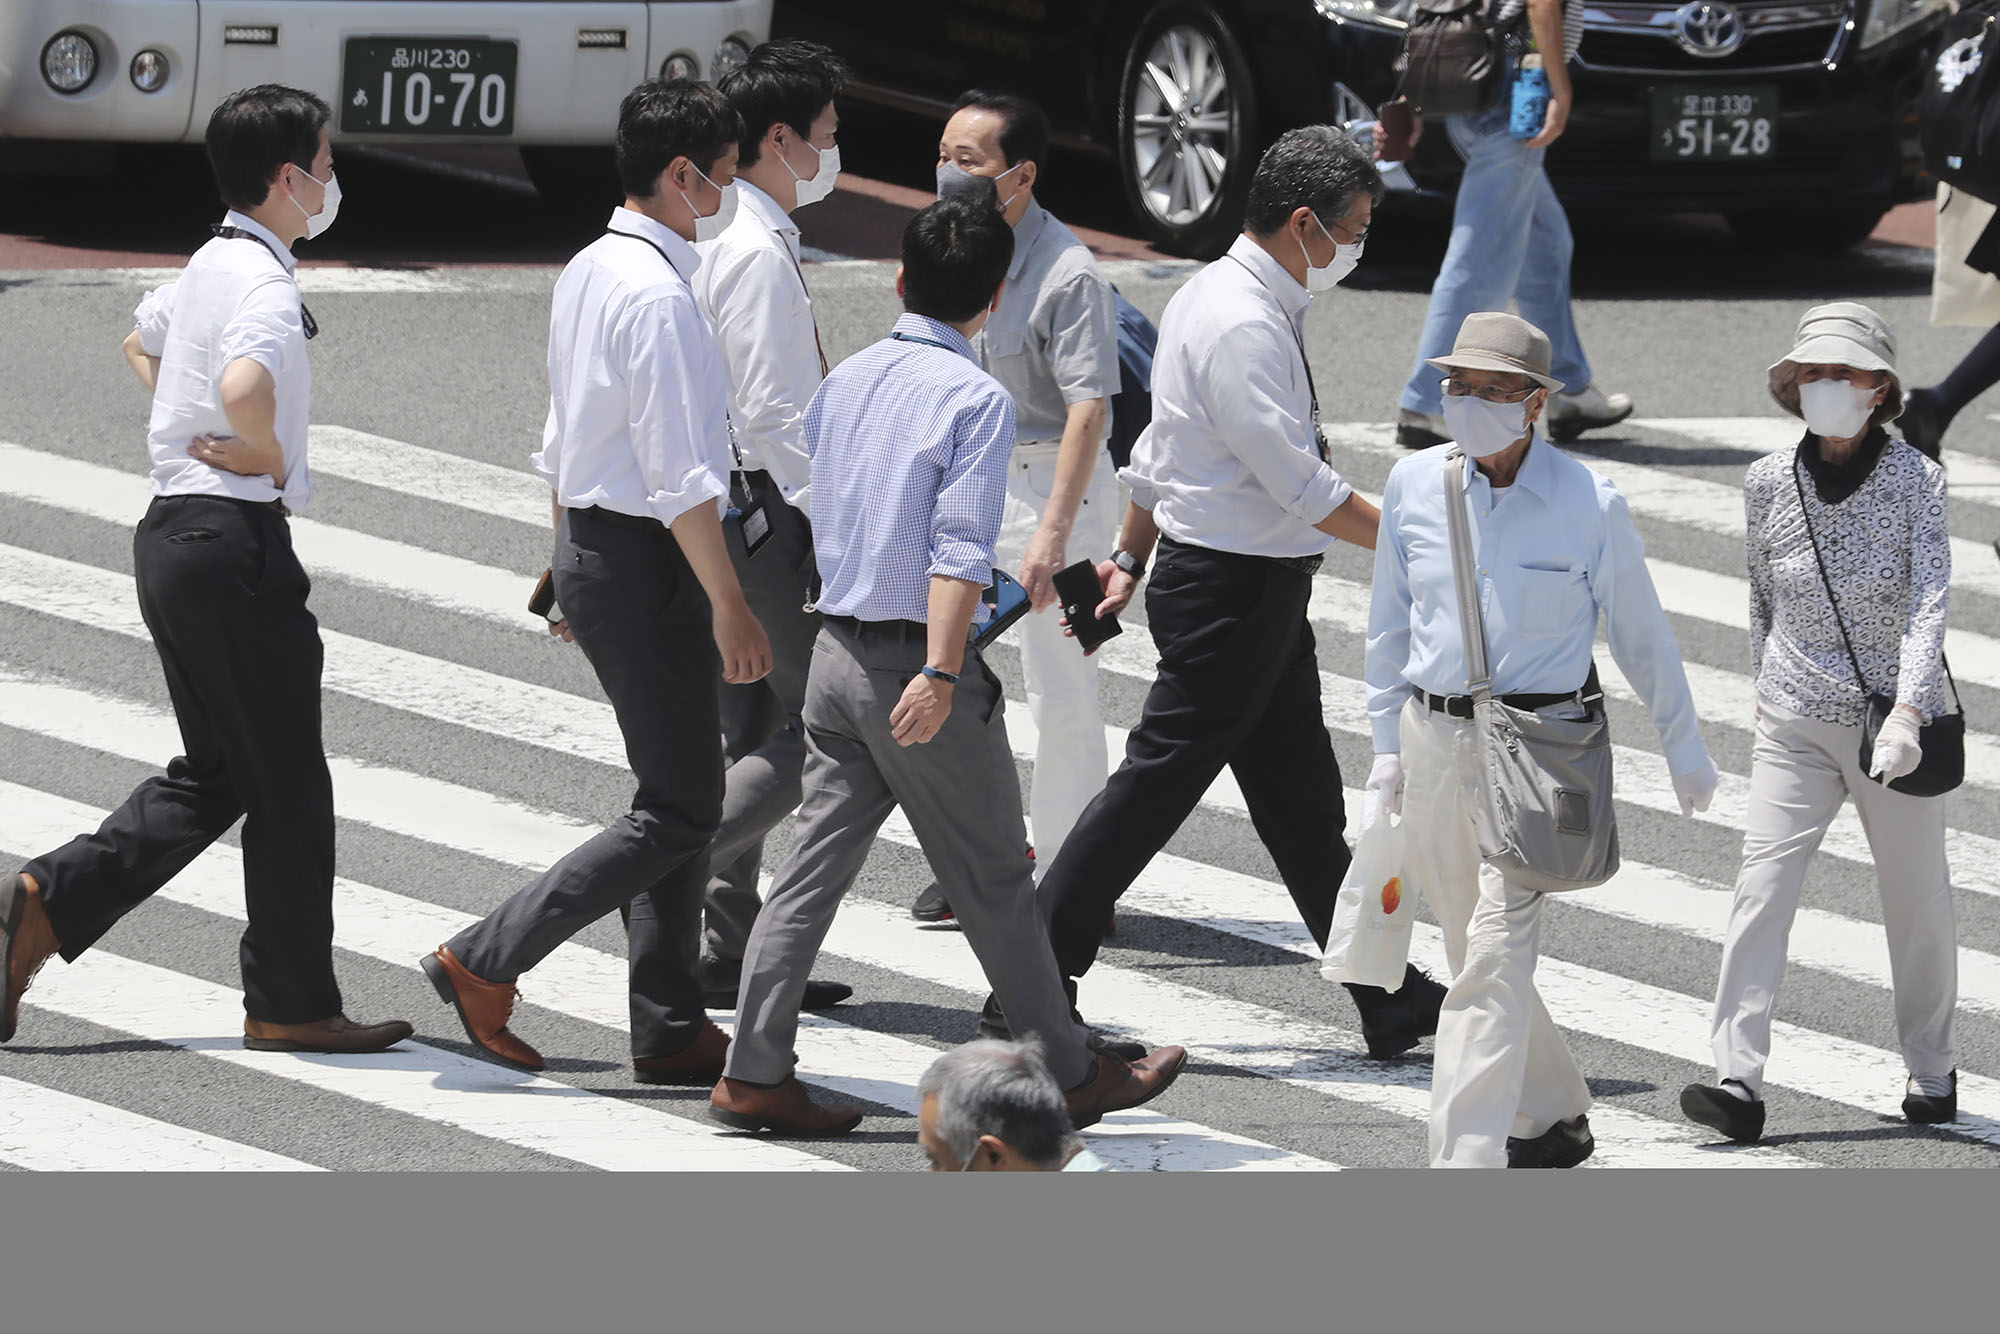 People wearing face masks to help protect against the spread of the coronavirus walk on a street in Tokyo, Japan, on Tuesday, August 4.